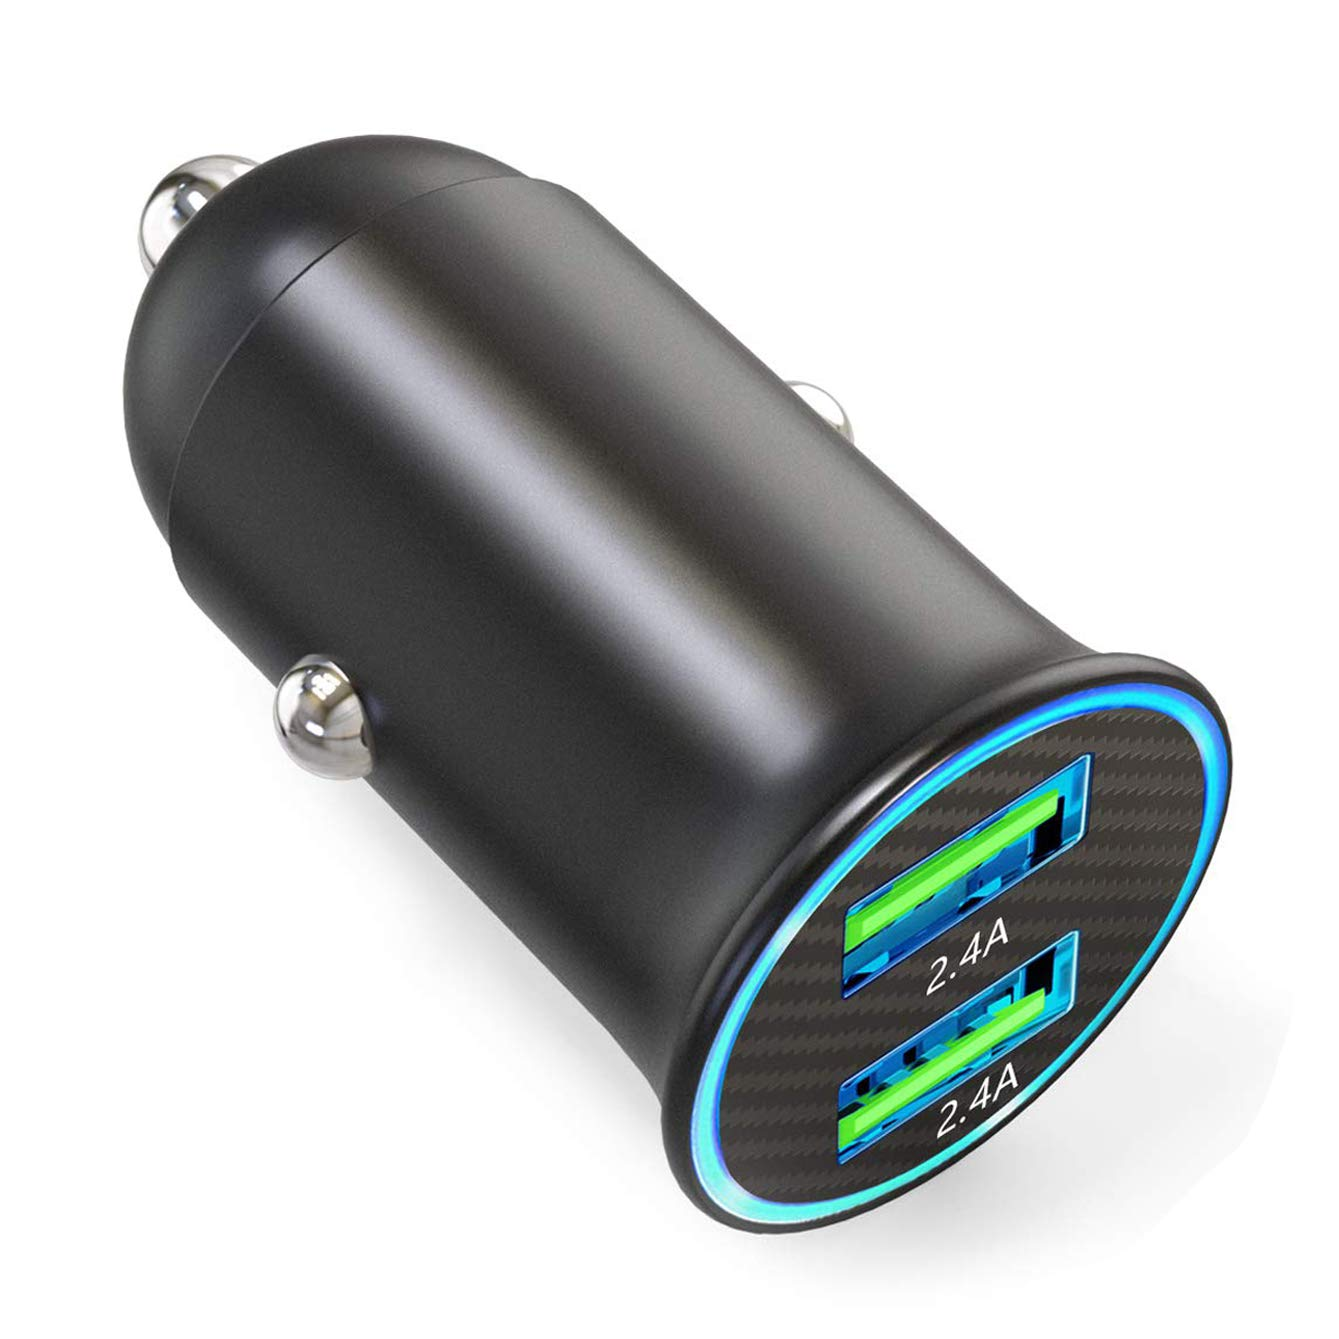 Car Charger Samsung S10 S9 S8 Plus Note 9 8 S7 iPhone Xs XS Max XR X 8 Plus 7 6S 6 4351487181 2 Port Quick Cell Phone Car Accessories Compatible w BrexLink 6A//36W Dual USB Ports Fast Car Charger Adapter